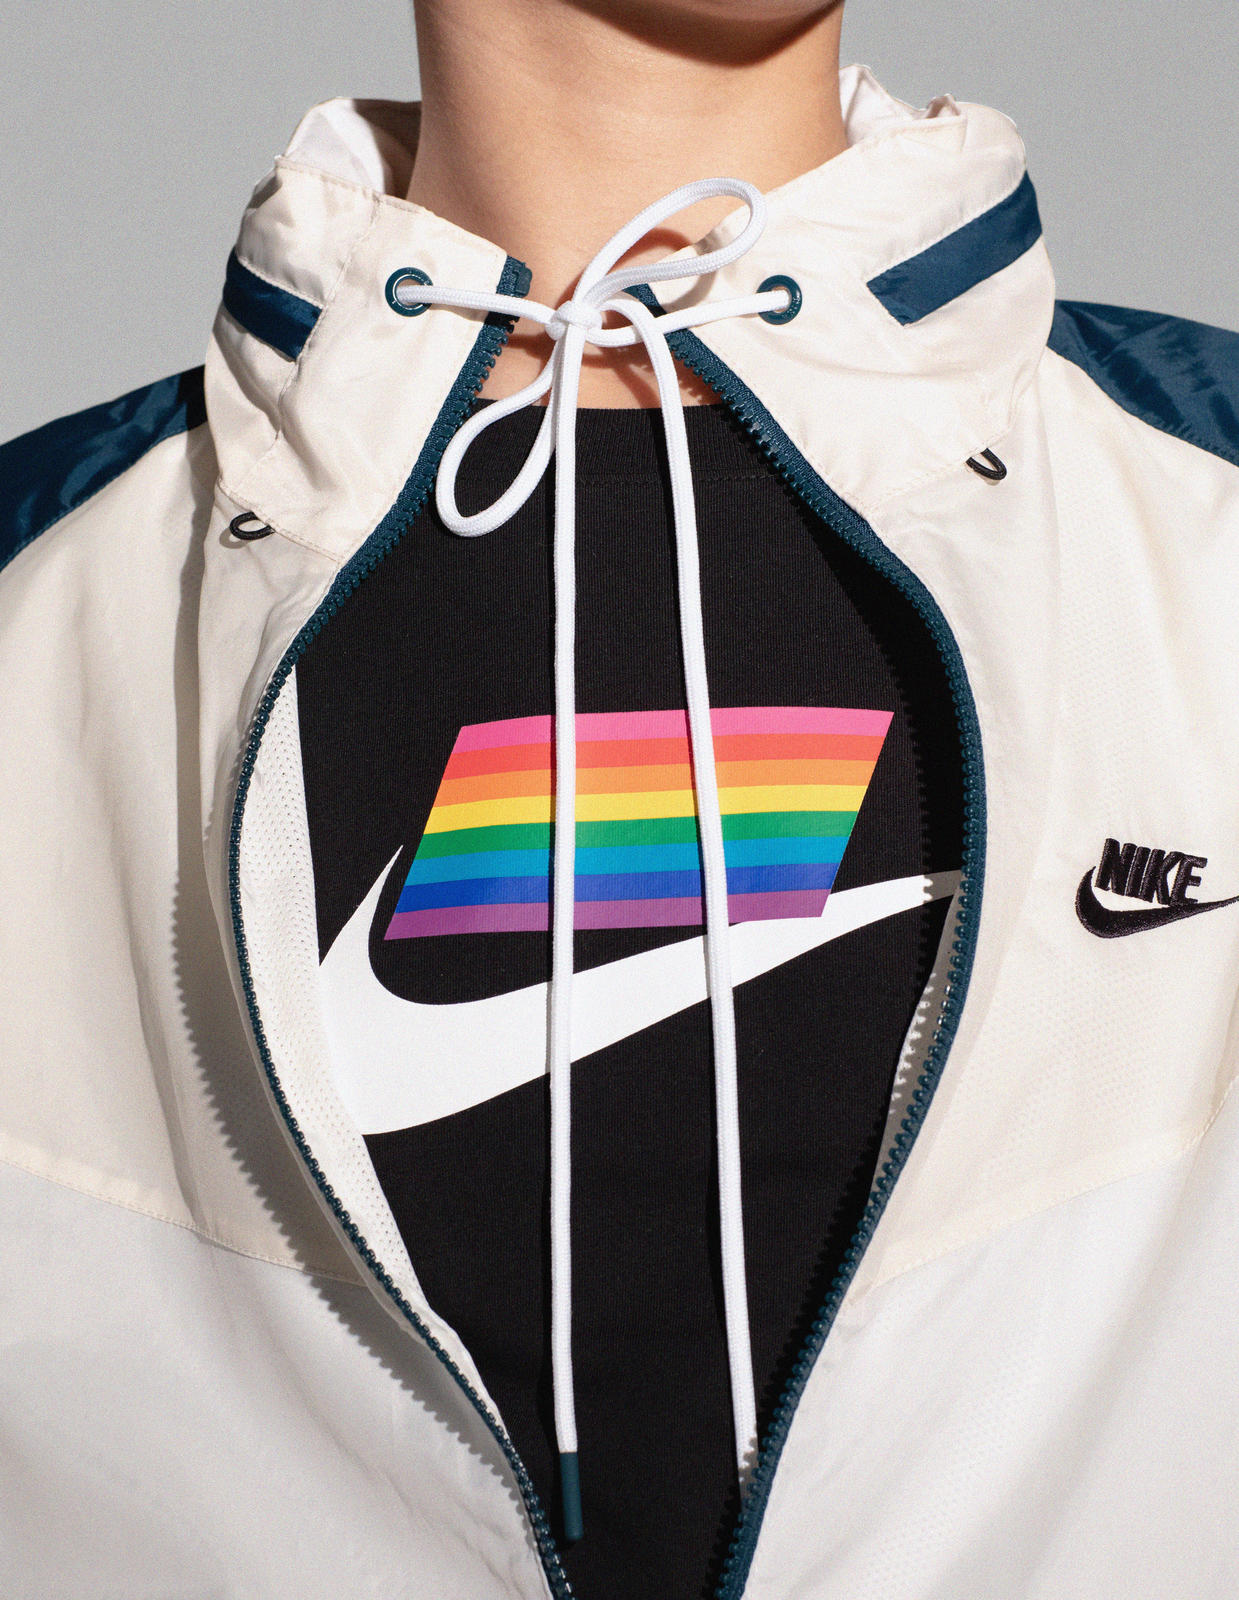 Nike-BETRUE-2019-Collection-12_88119